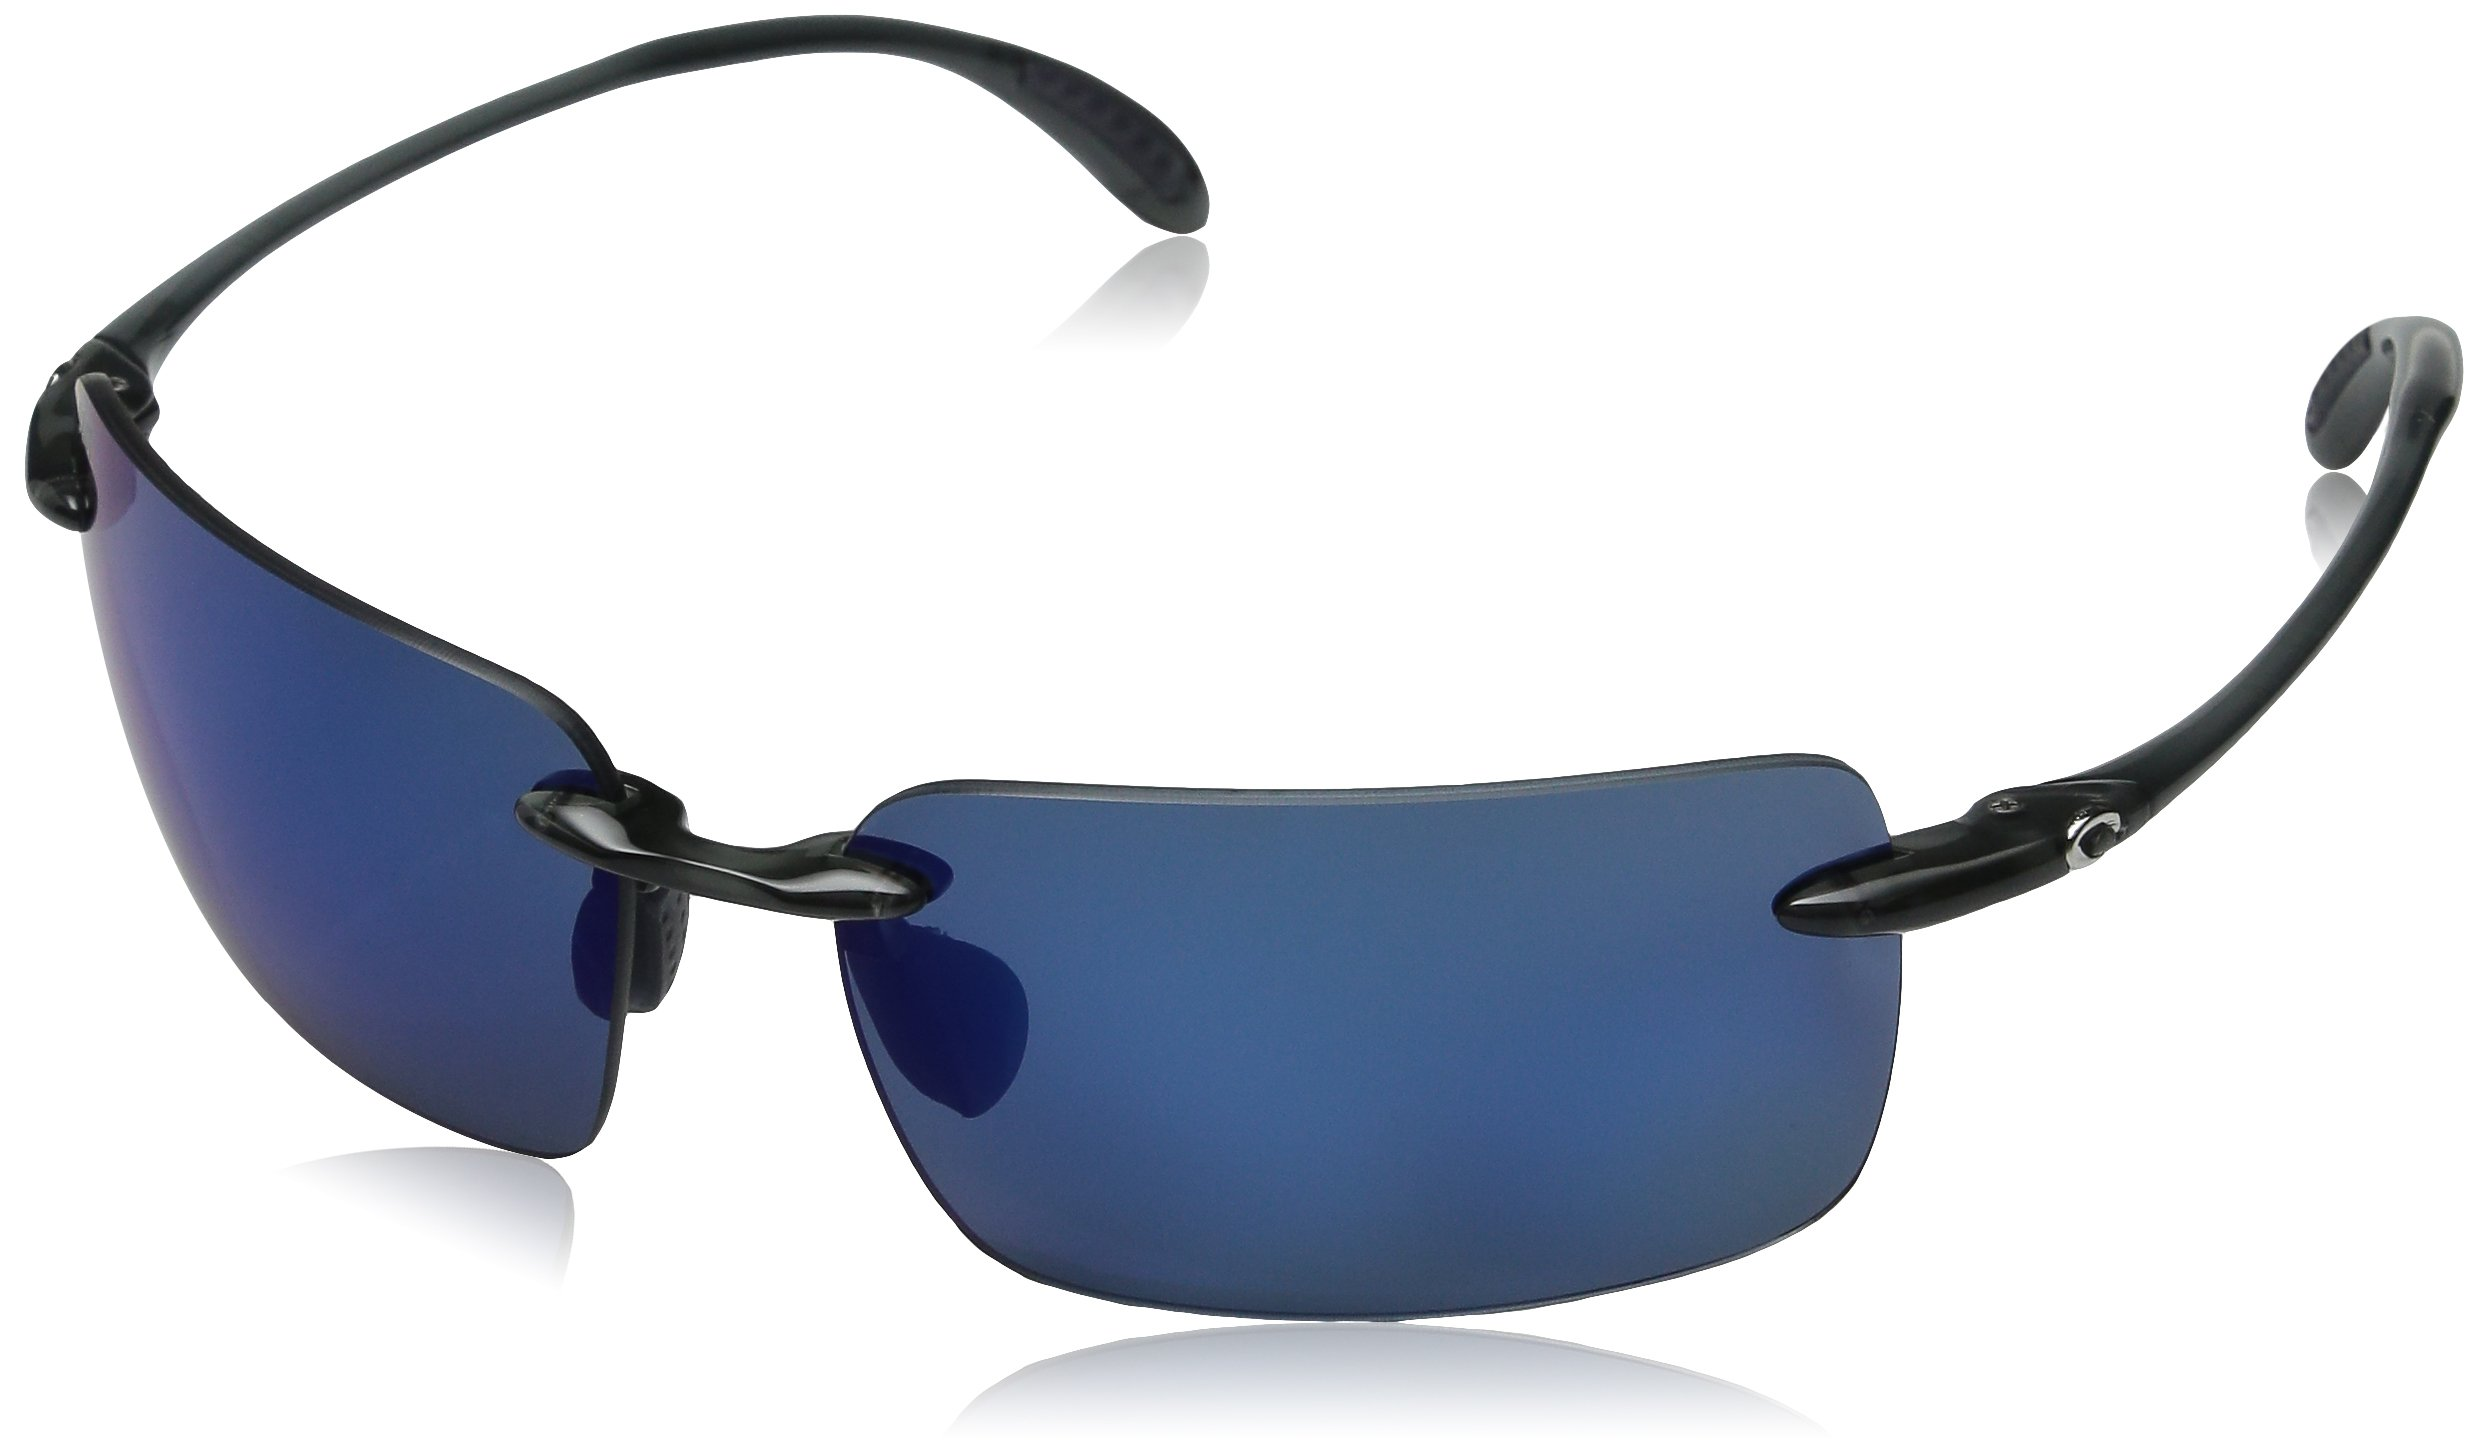 Costa del Mar Unisex-Adult Cayan AY 50 OBMP Polarized Iridium Rimless Sunglasses, Thunder Gray, 65 mm by Costa Del Mar